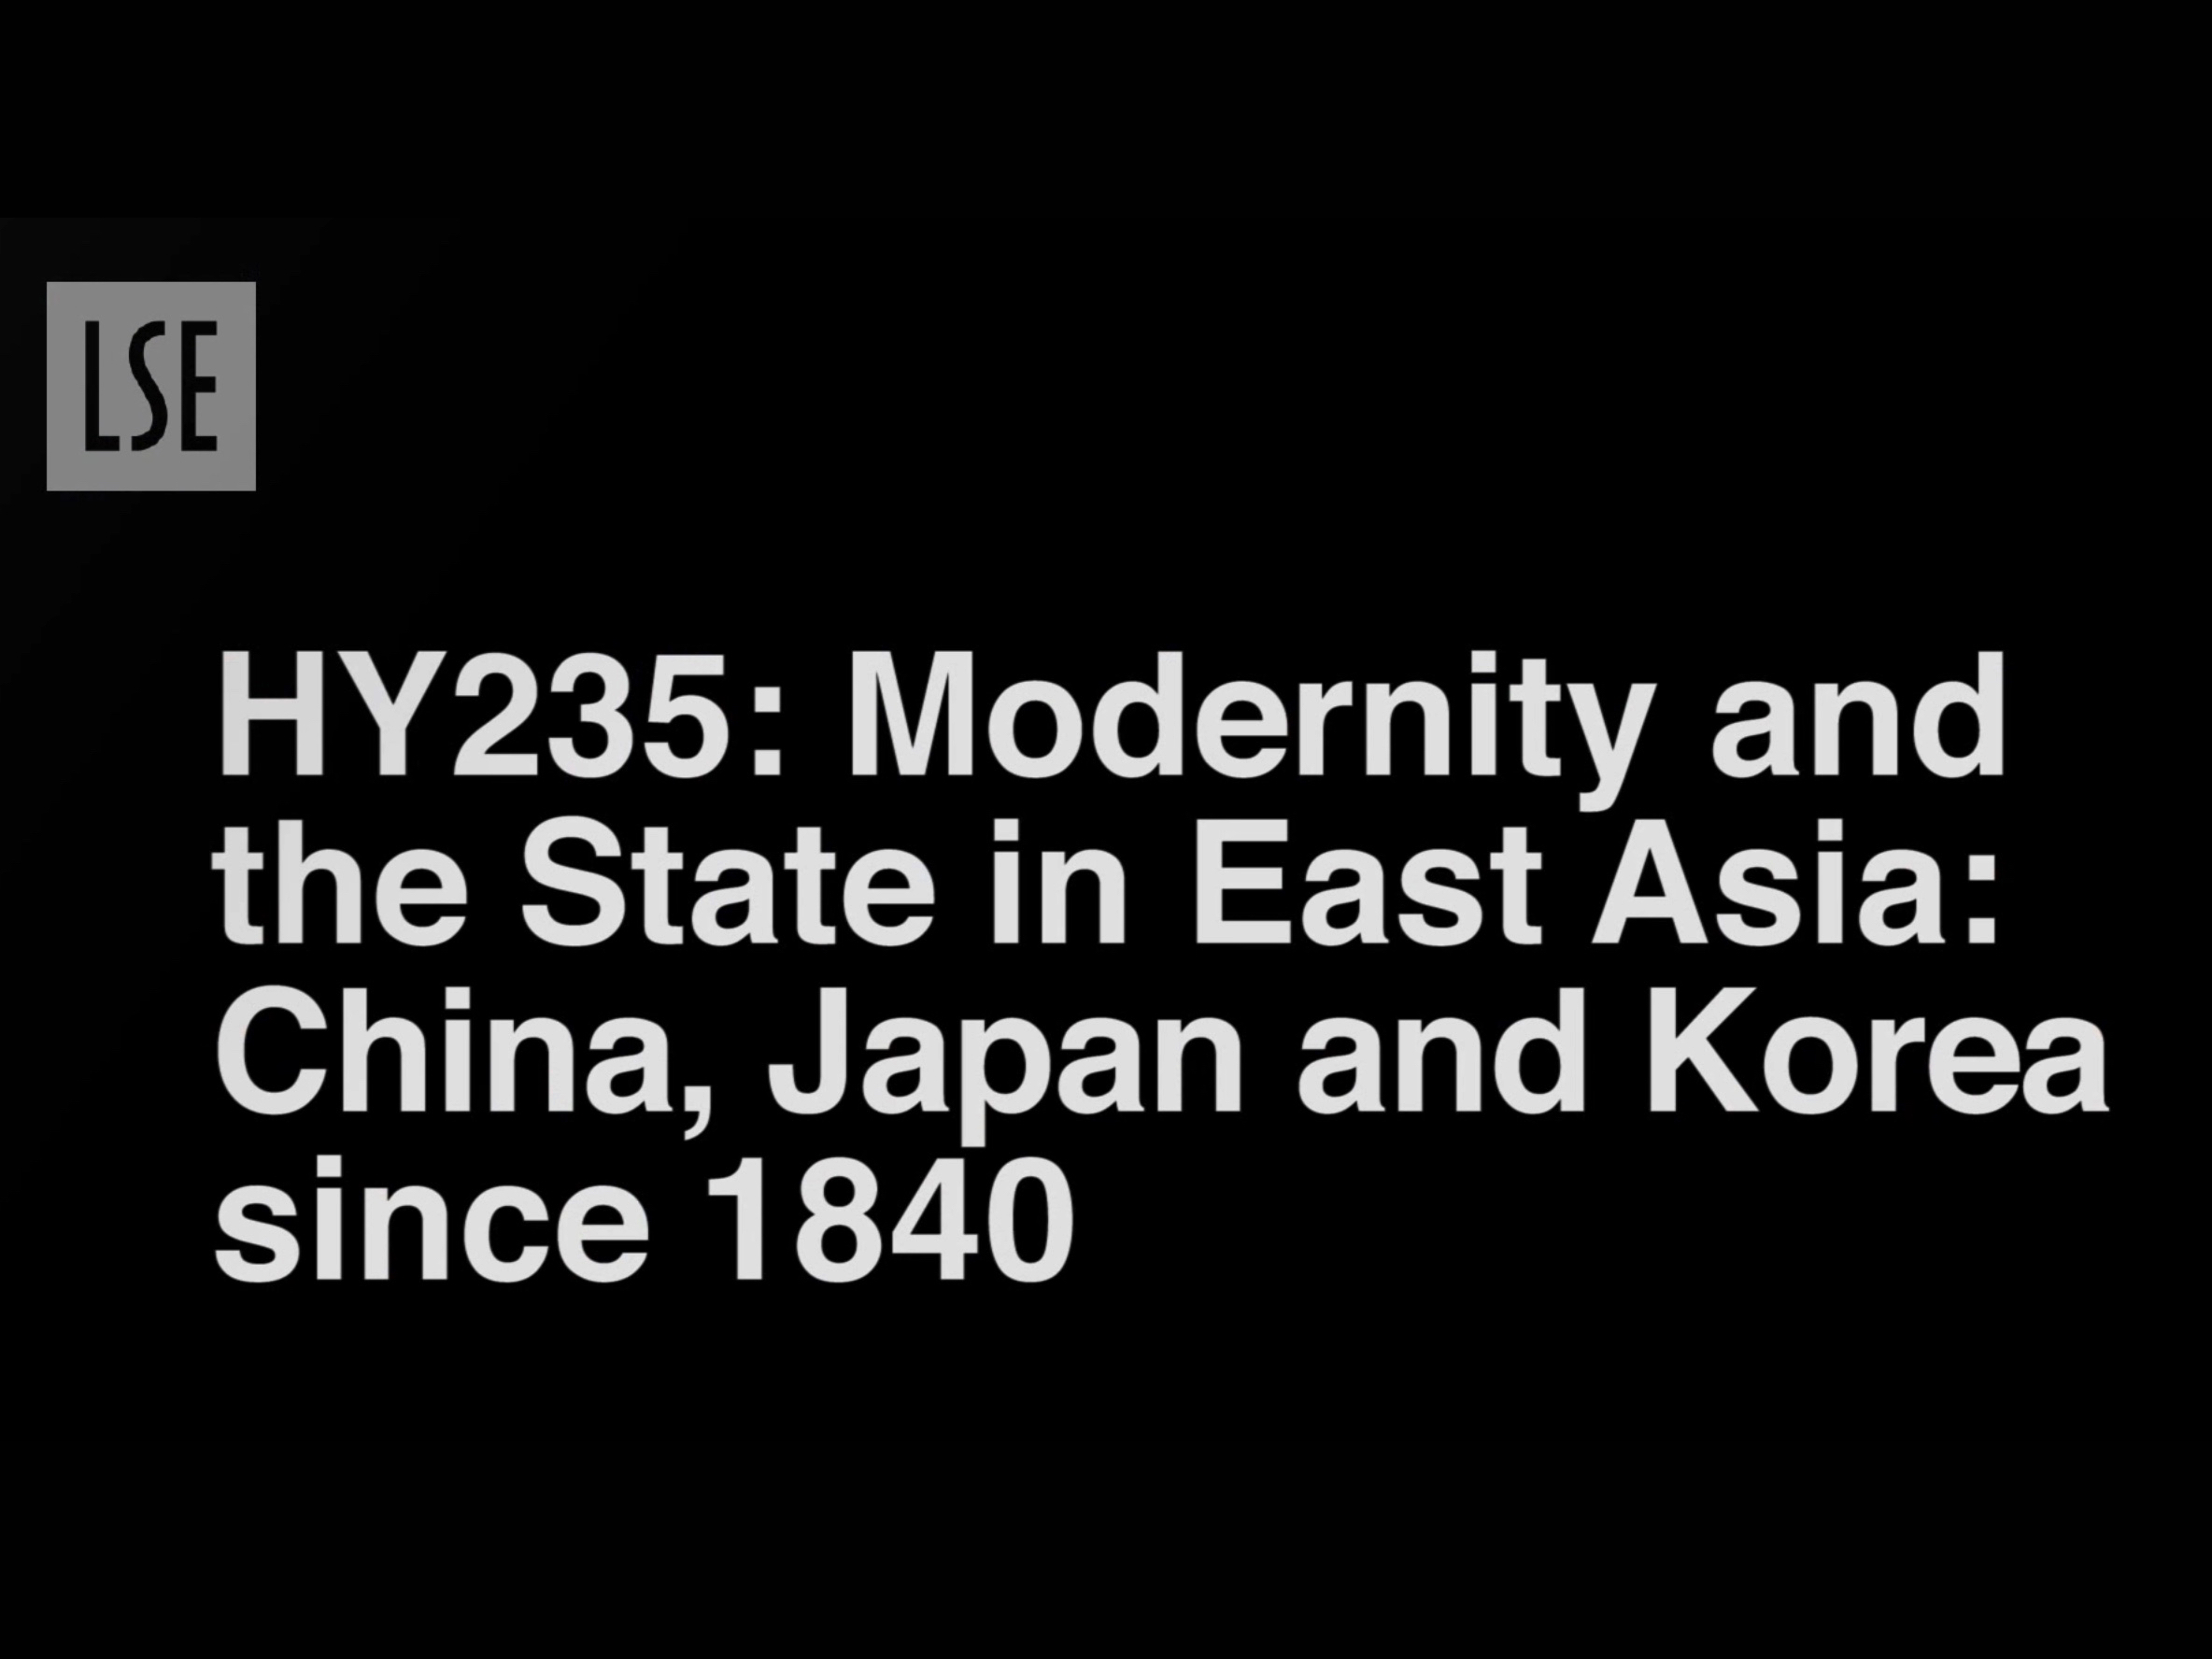 HY235: Modernity and the State in East Asia: China, Japan and Korea since 1840